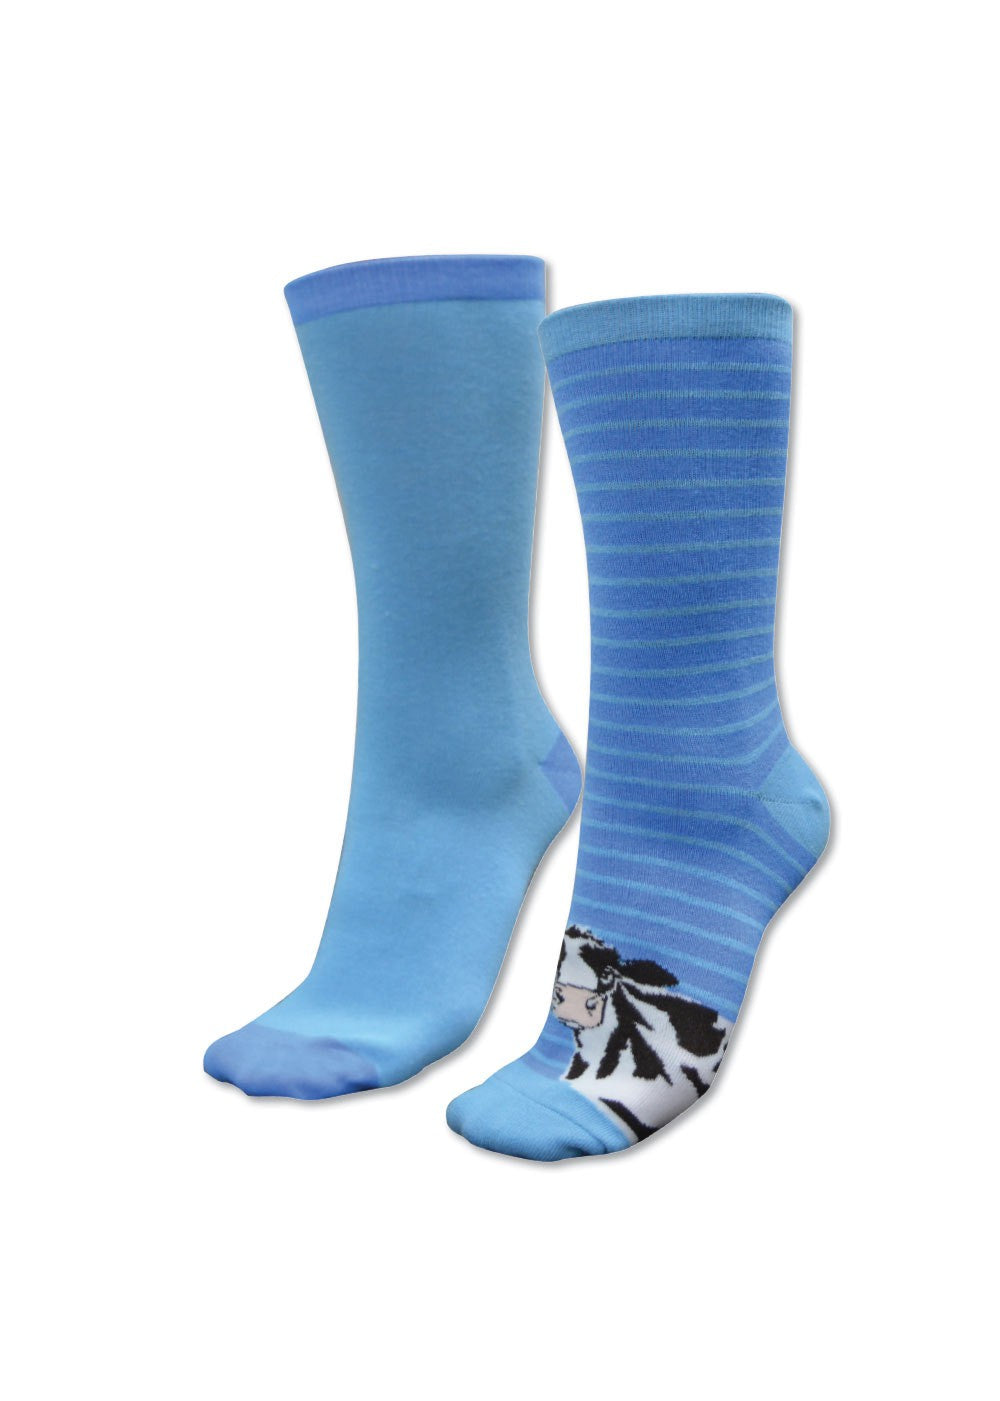 Thomas Cook | Kids | Socks | Homestead Twin Pack | Blues - BK8 Outfitters Australia